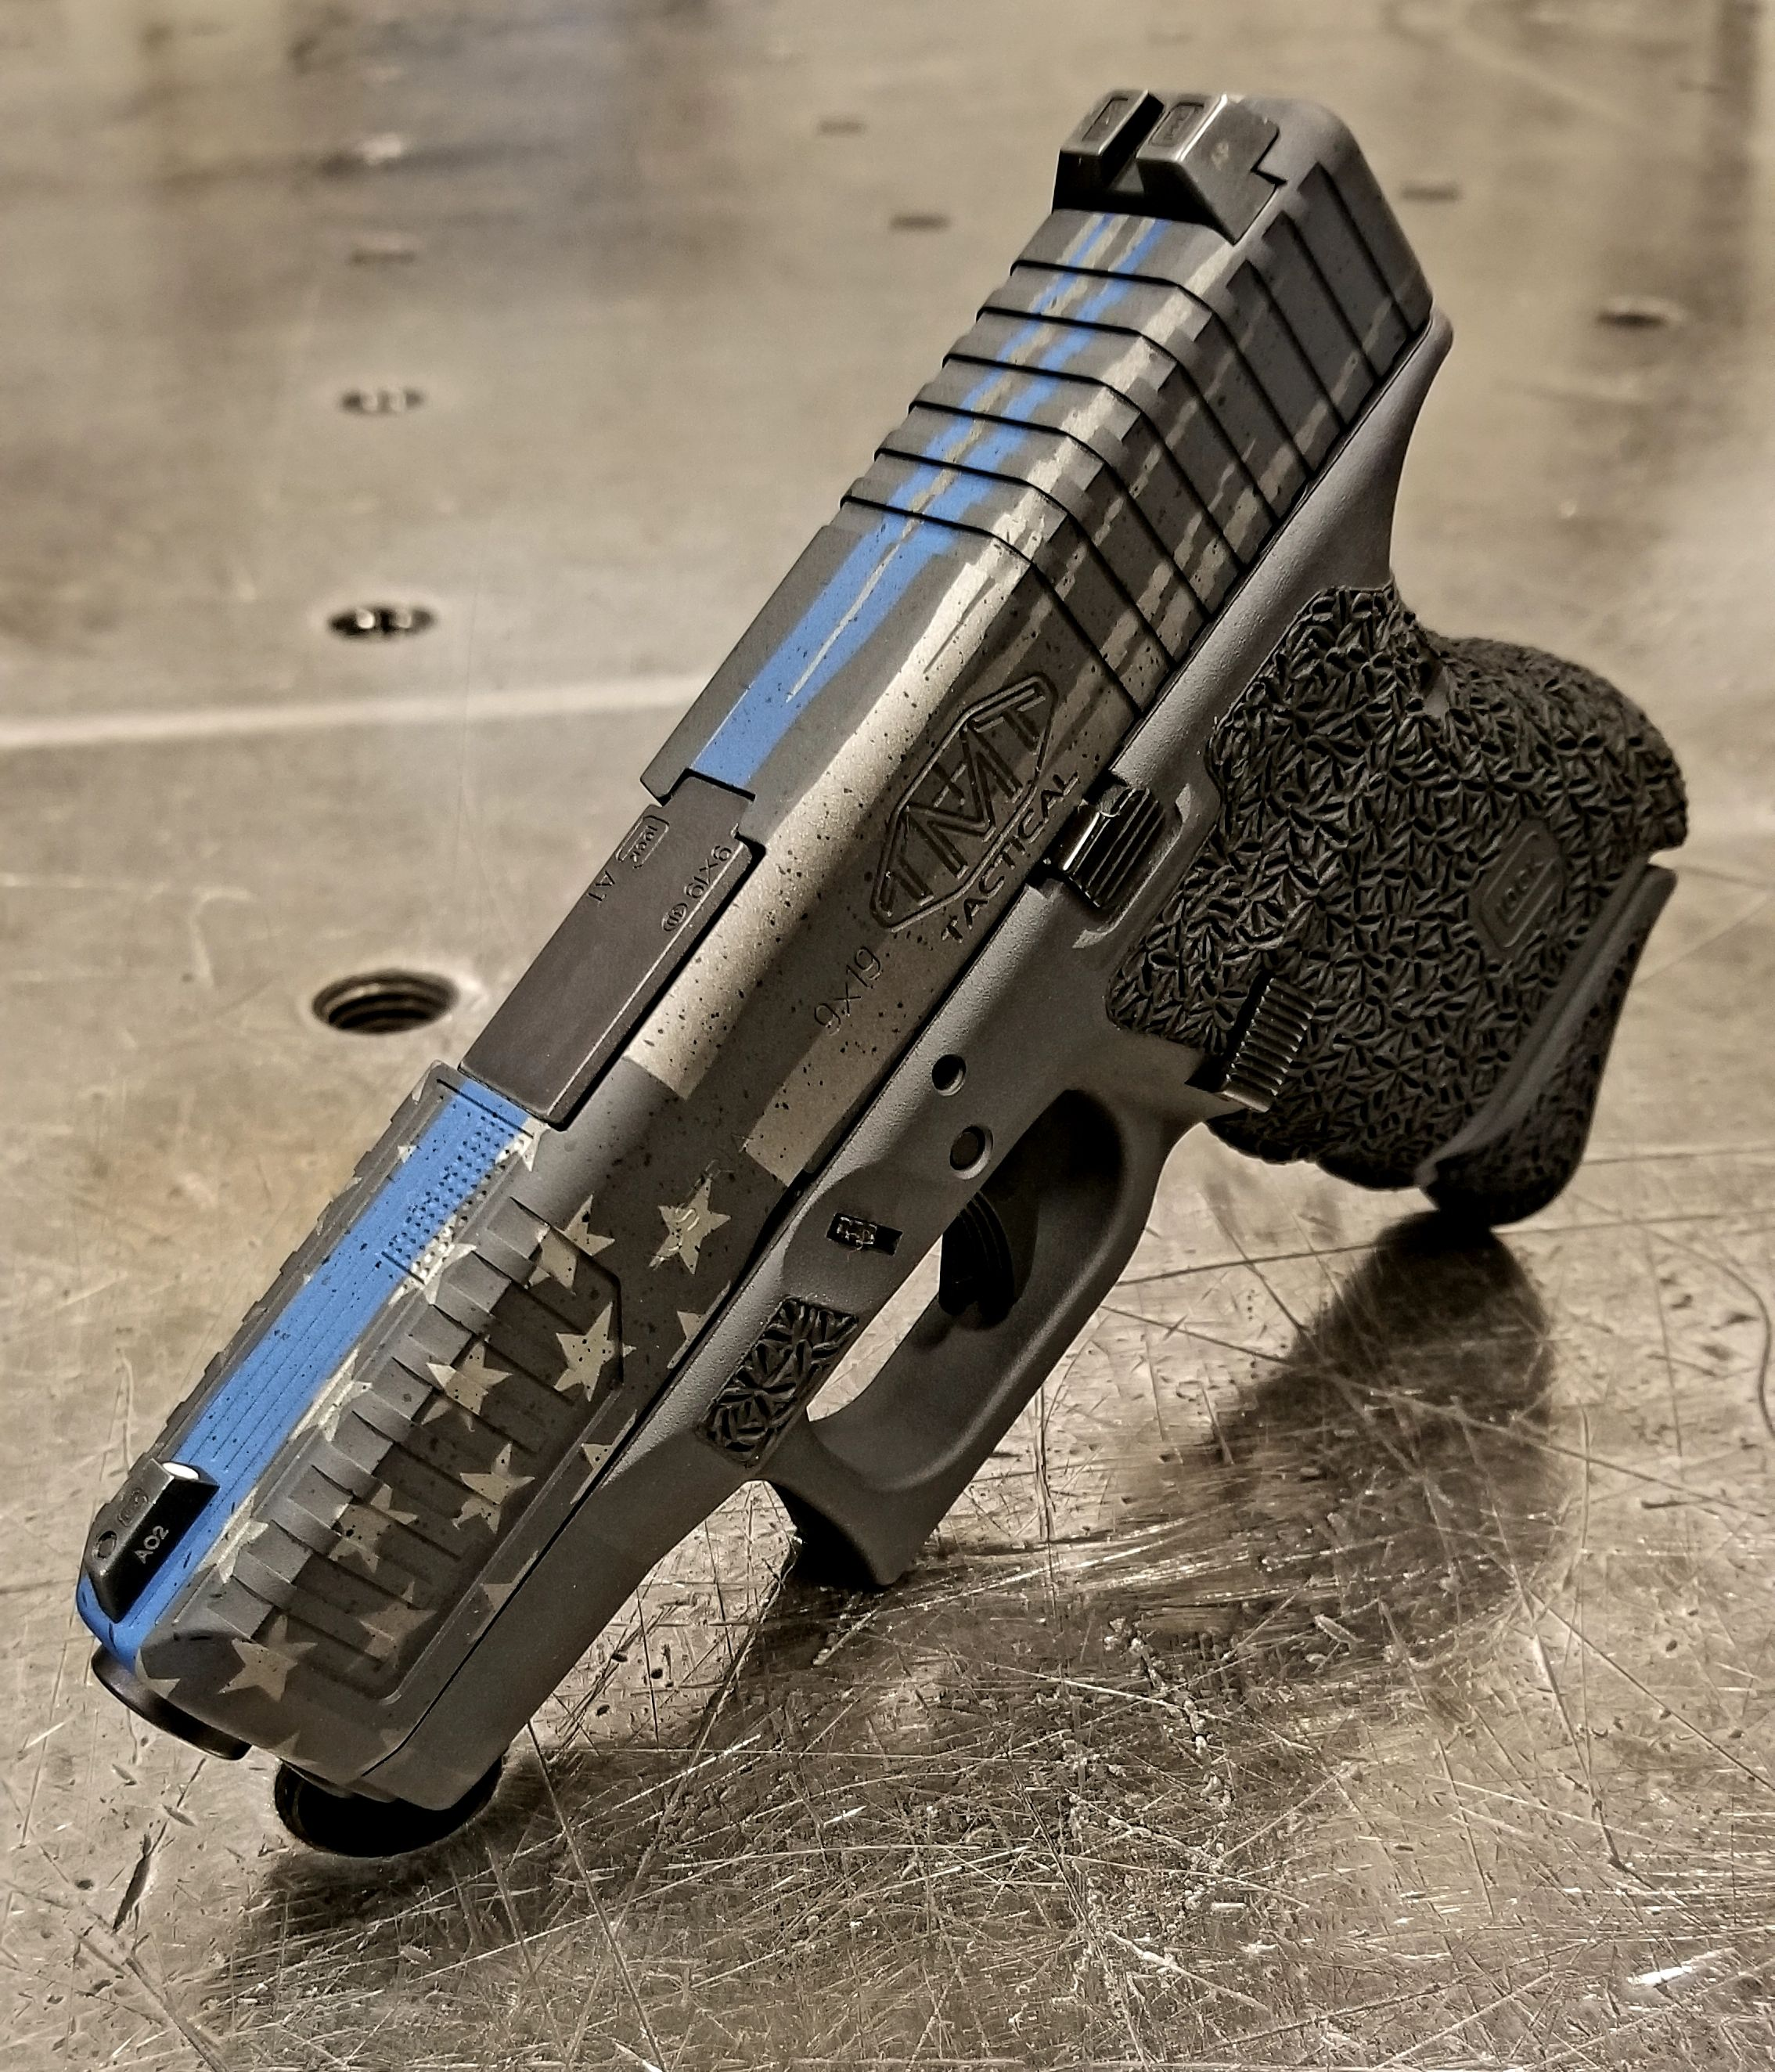 Thin blue line Glock 26  Cerakote, stipple, and machined cocking